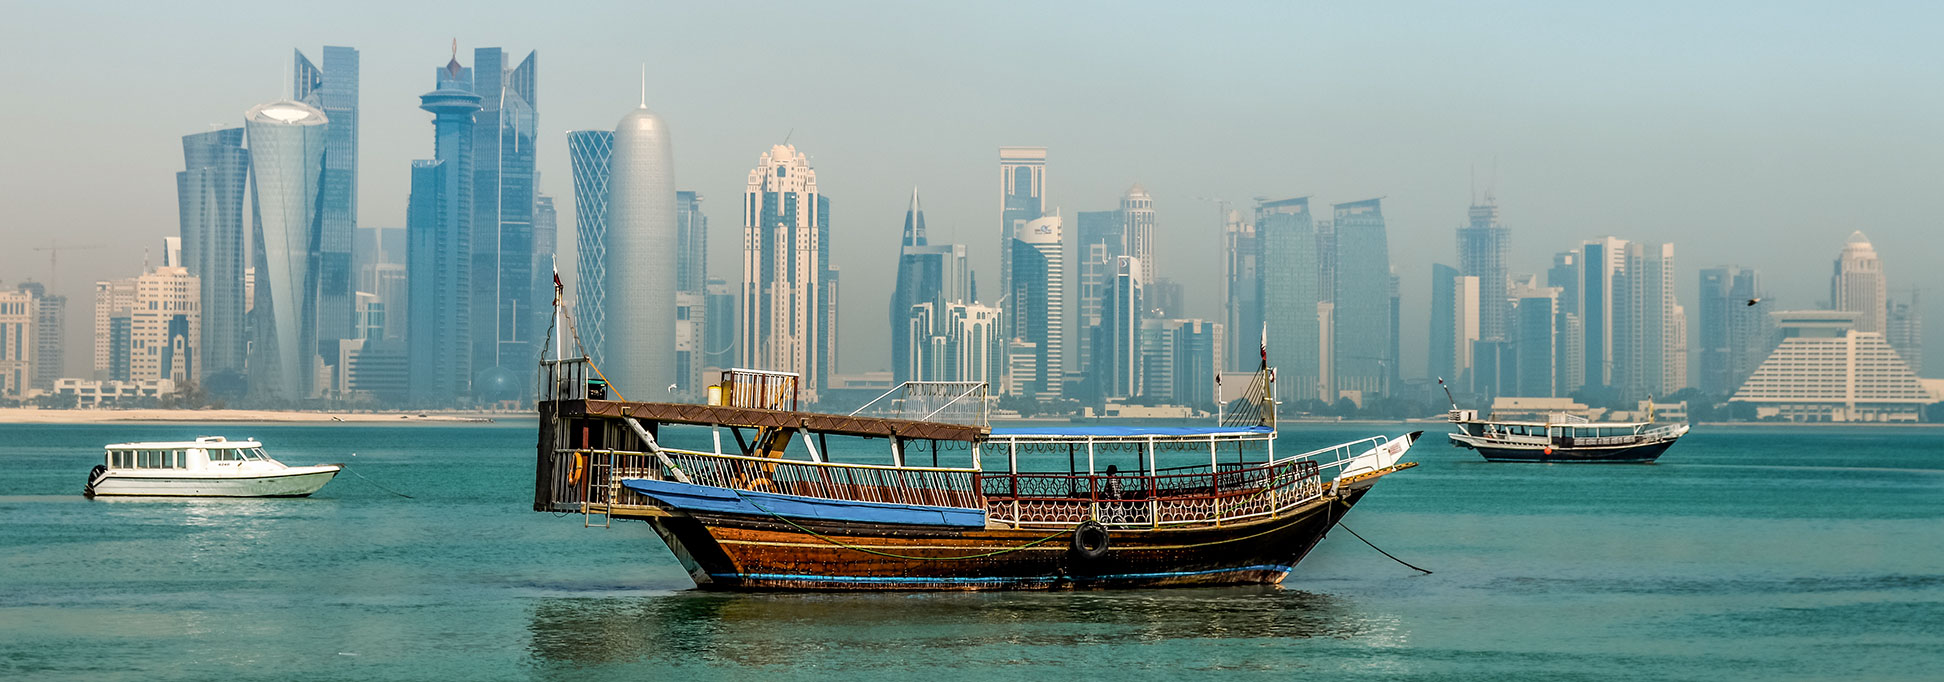 Doha skyline with Dhow.